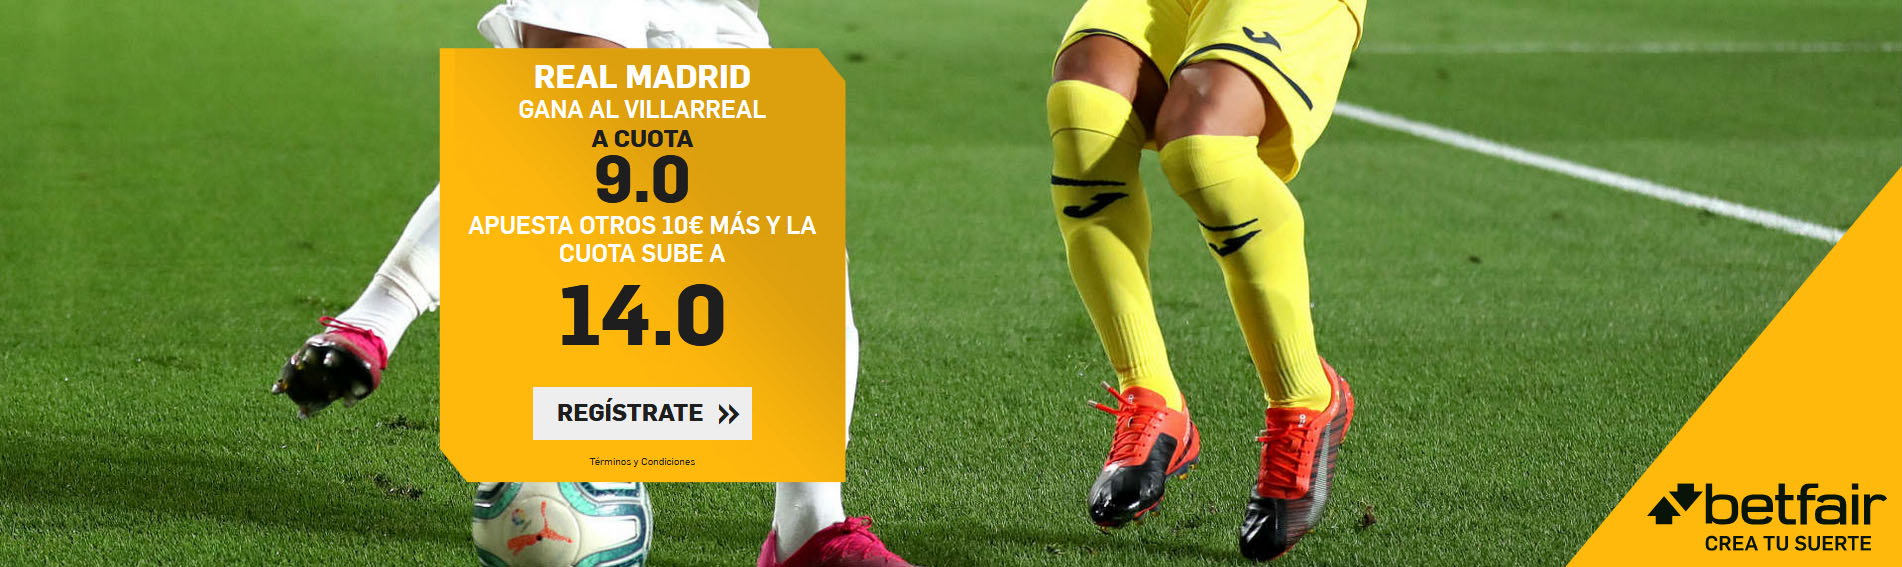 Real Madrid vence a Villarreal